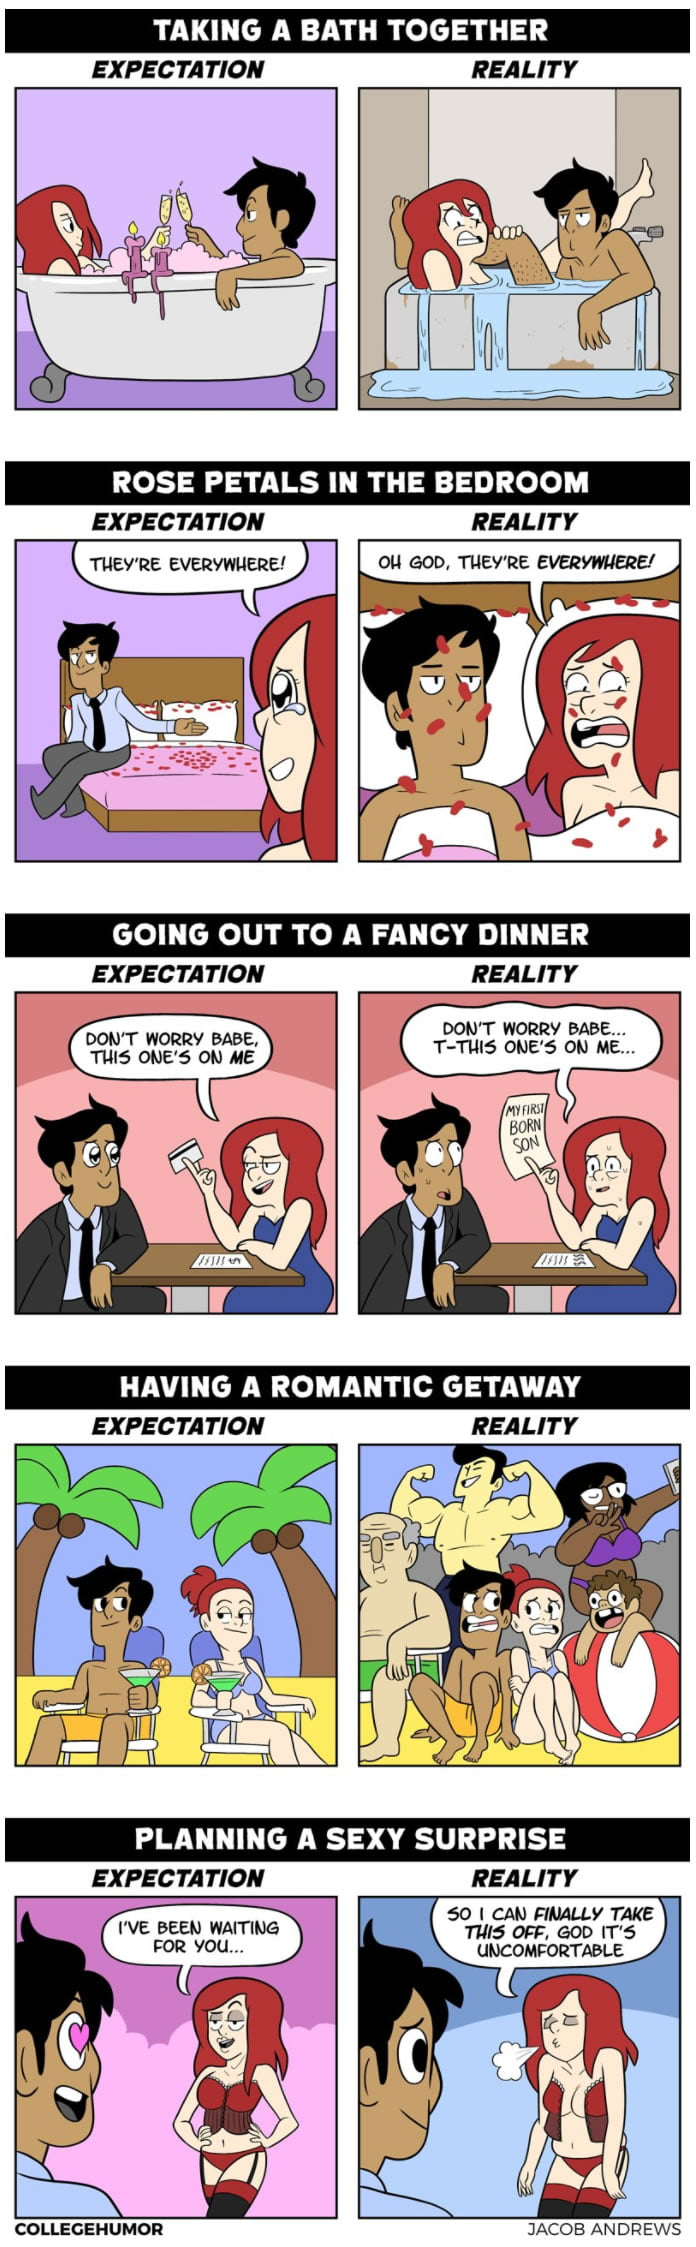 Being Romantic: Expectation vs Reality